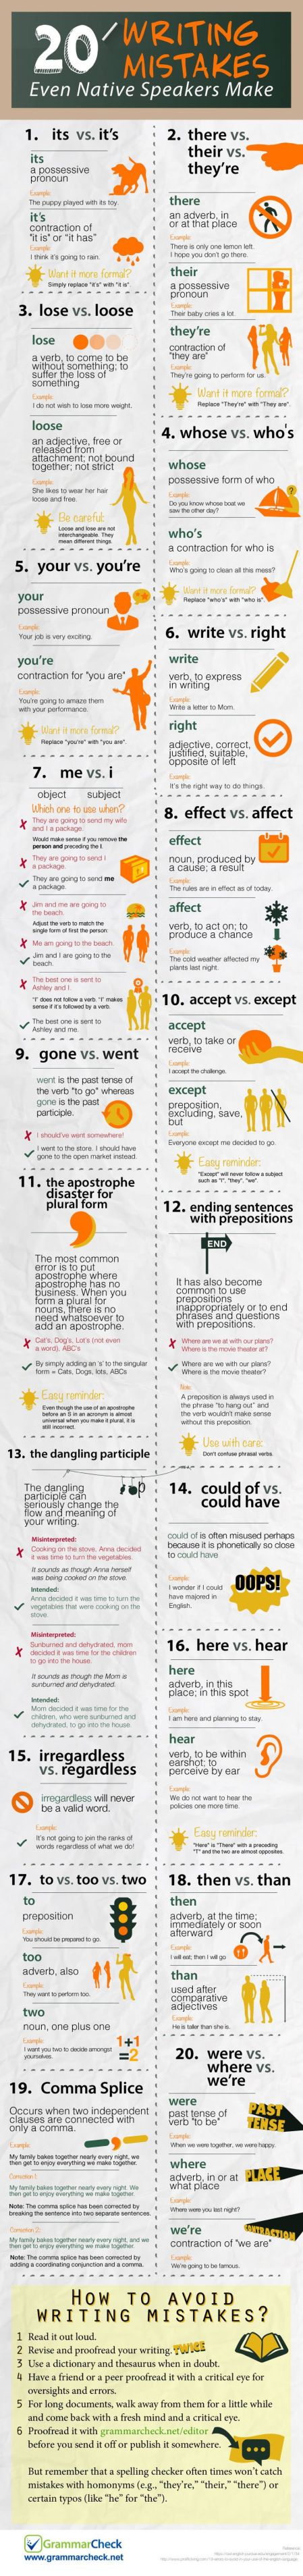 20-writing-mistakes-even-native-speakers-make-full-infographic